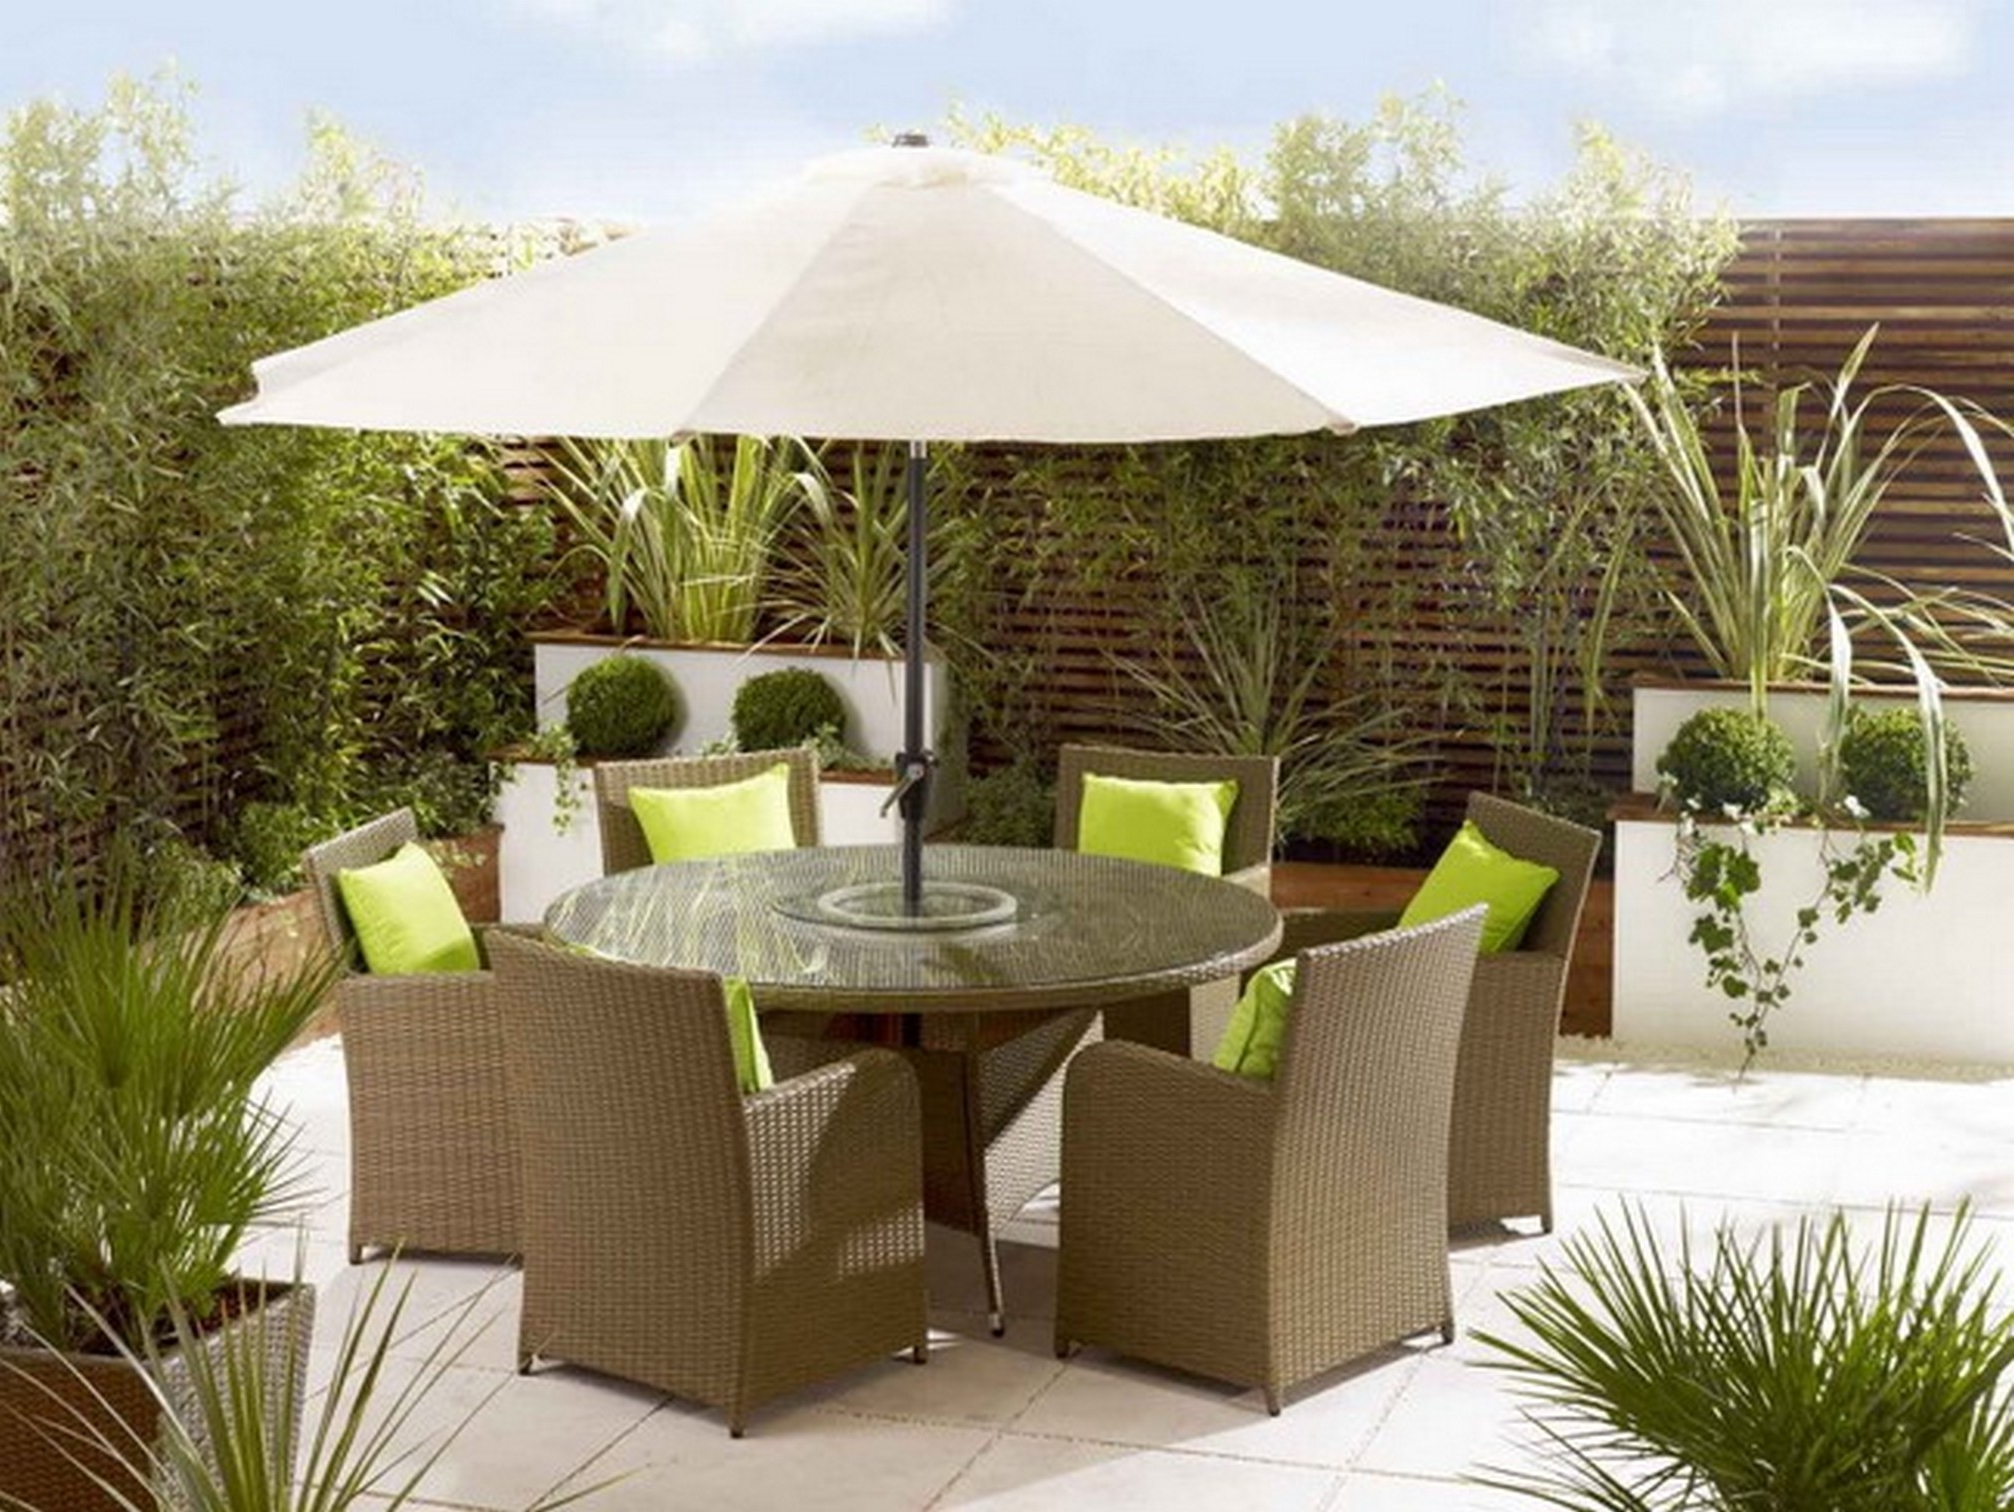 Patio Furniture Sets With Umbrellas With Recent Patio Furniture Sets With Umbrella — The Home Redesign : Patio Table (View 17 of 20)